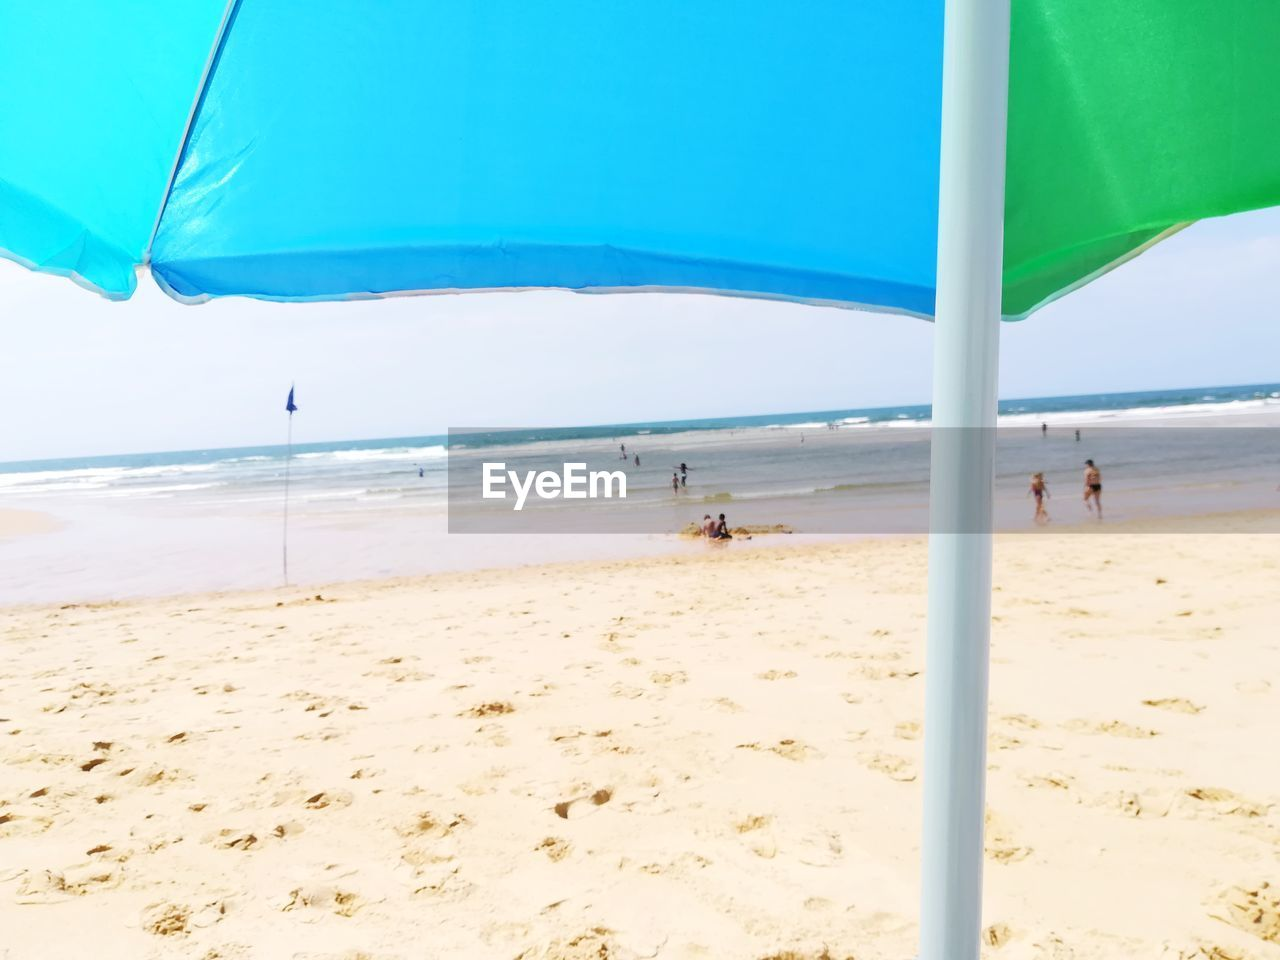 beach, land, sea, water, sand, sky, day, nature, incidental people, horizon, horizon over water, vacations, summer, trip, sunlight, holiday, scenics - nature, parasol, beauty in nature, outdoors, wind